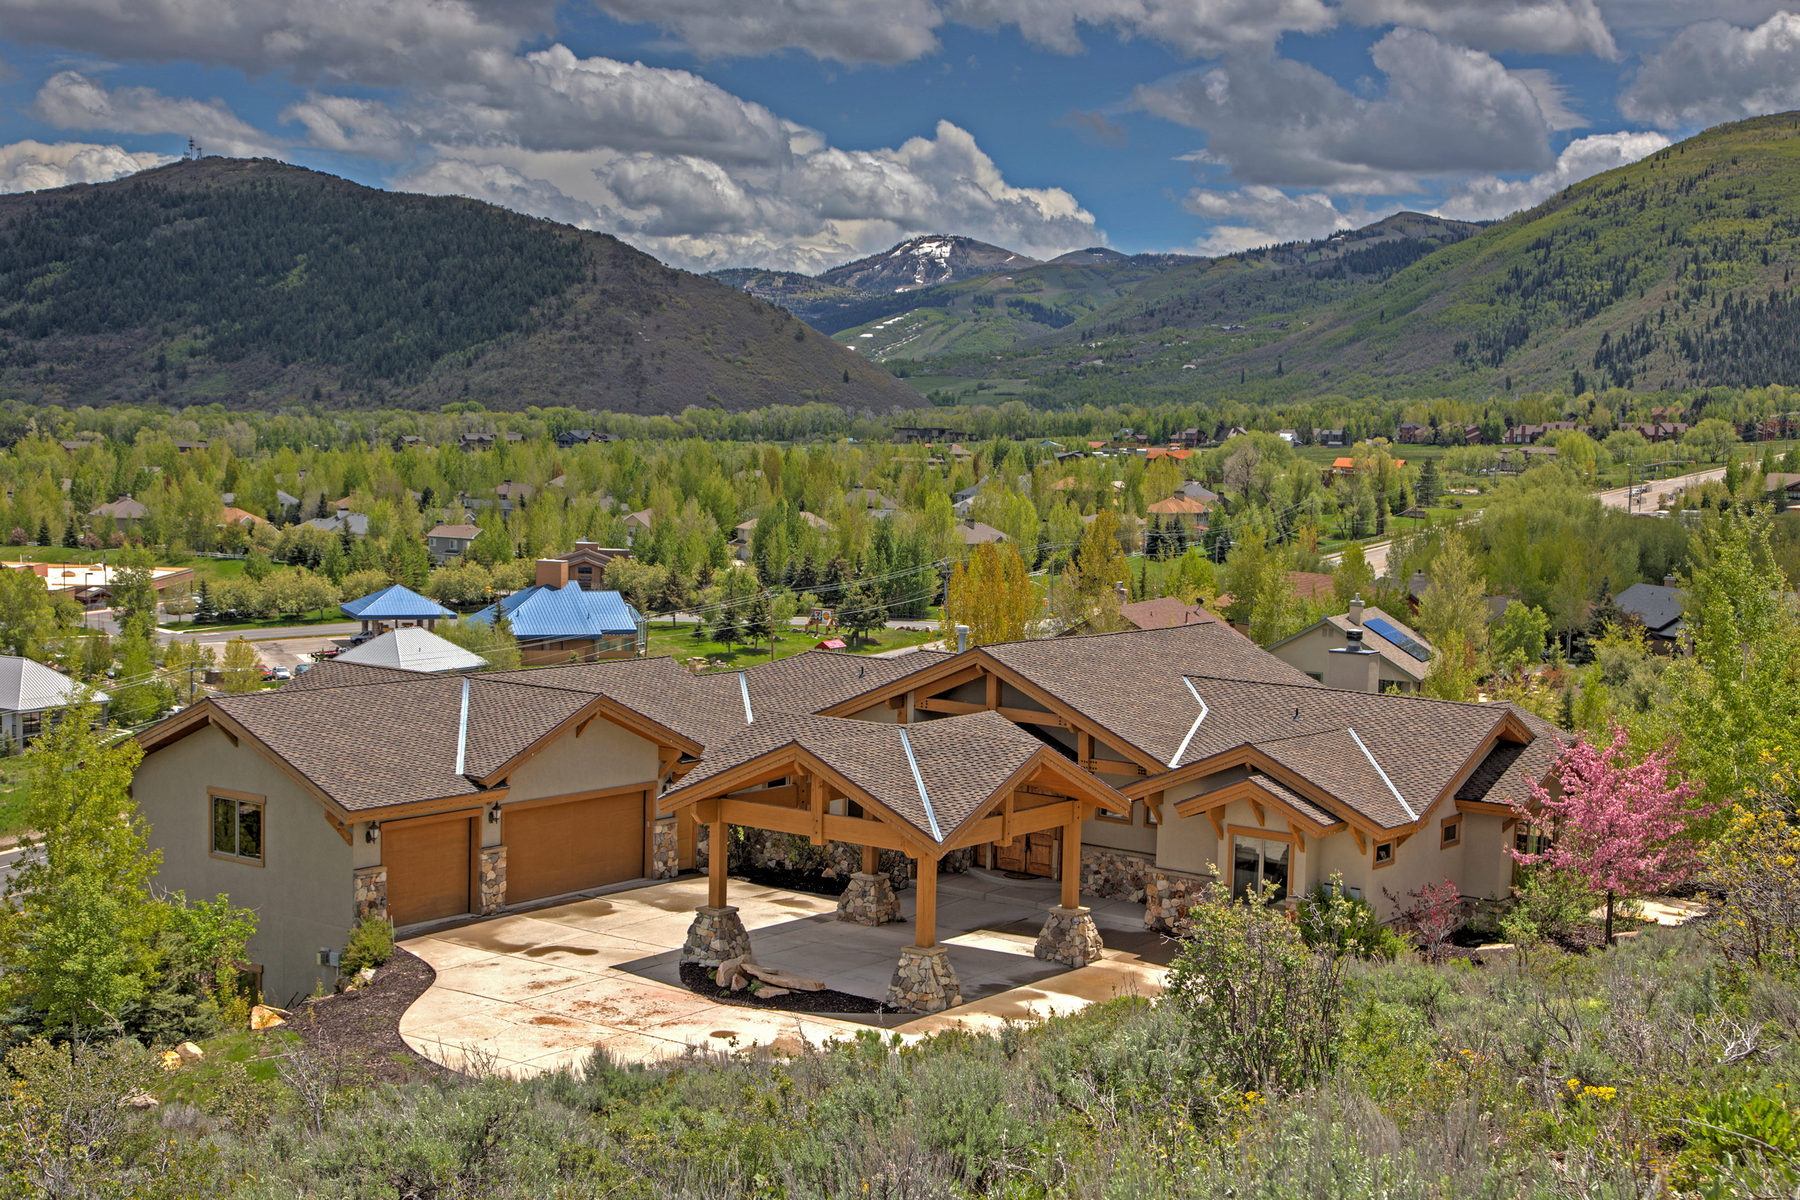 Property For Sale at Family Gathering Home Less than One Mile to Skiing at Park City